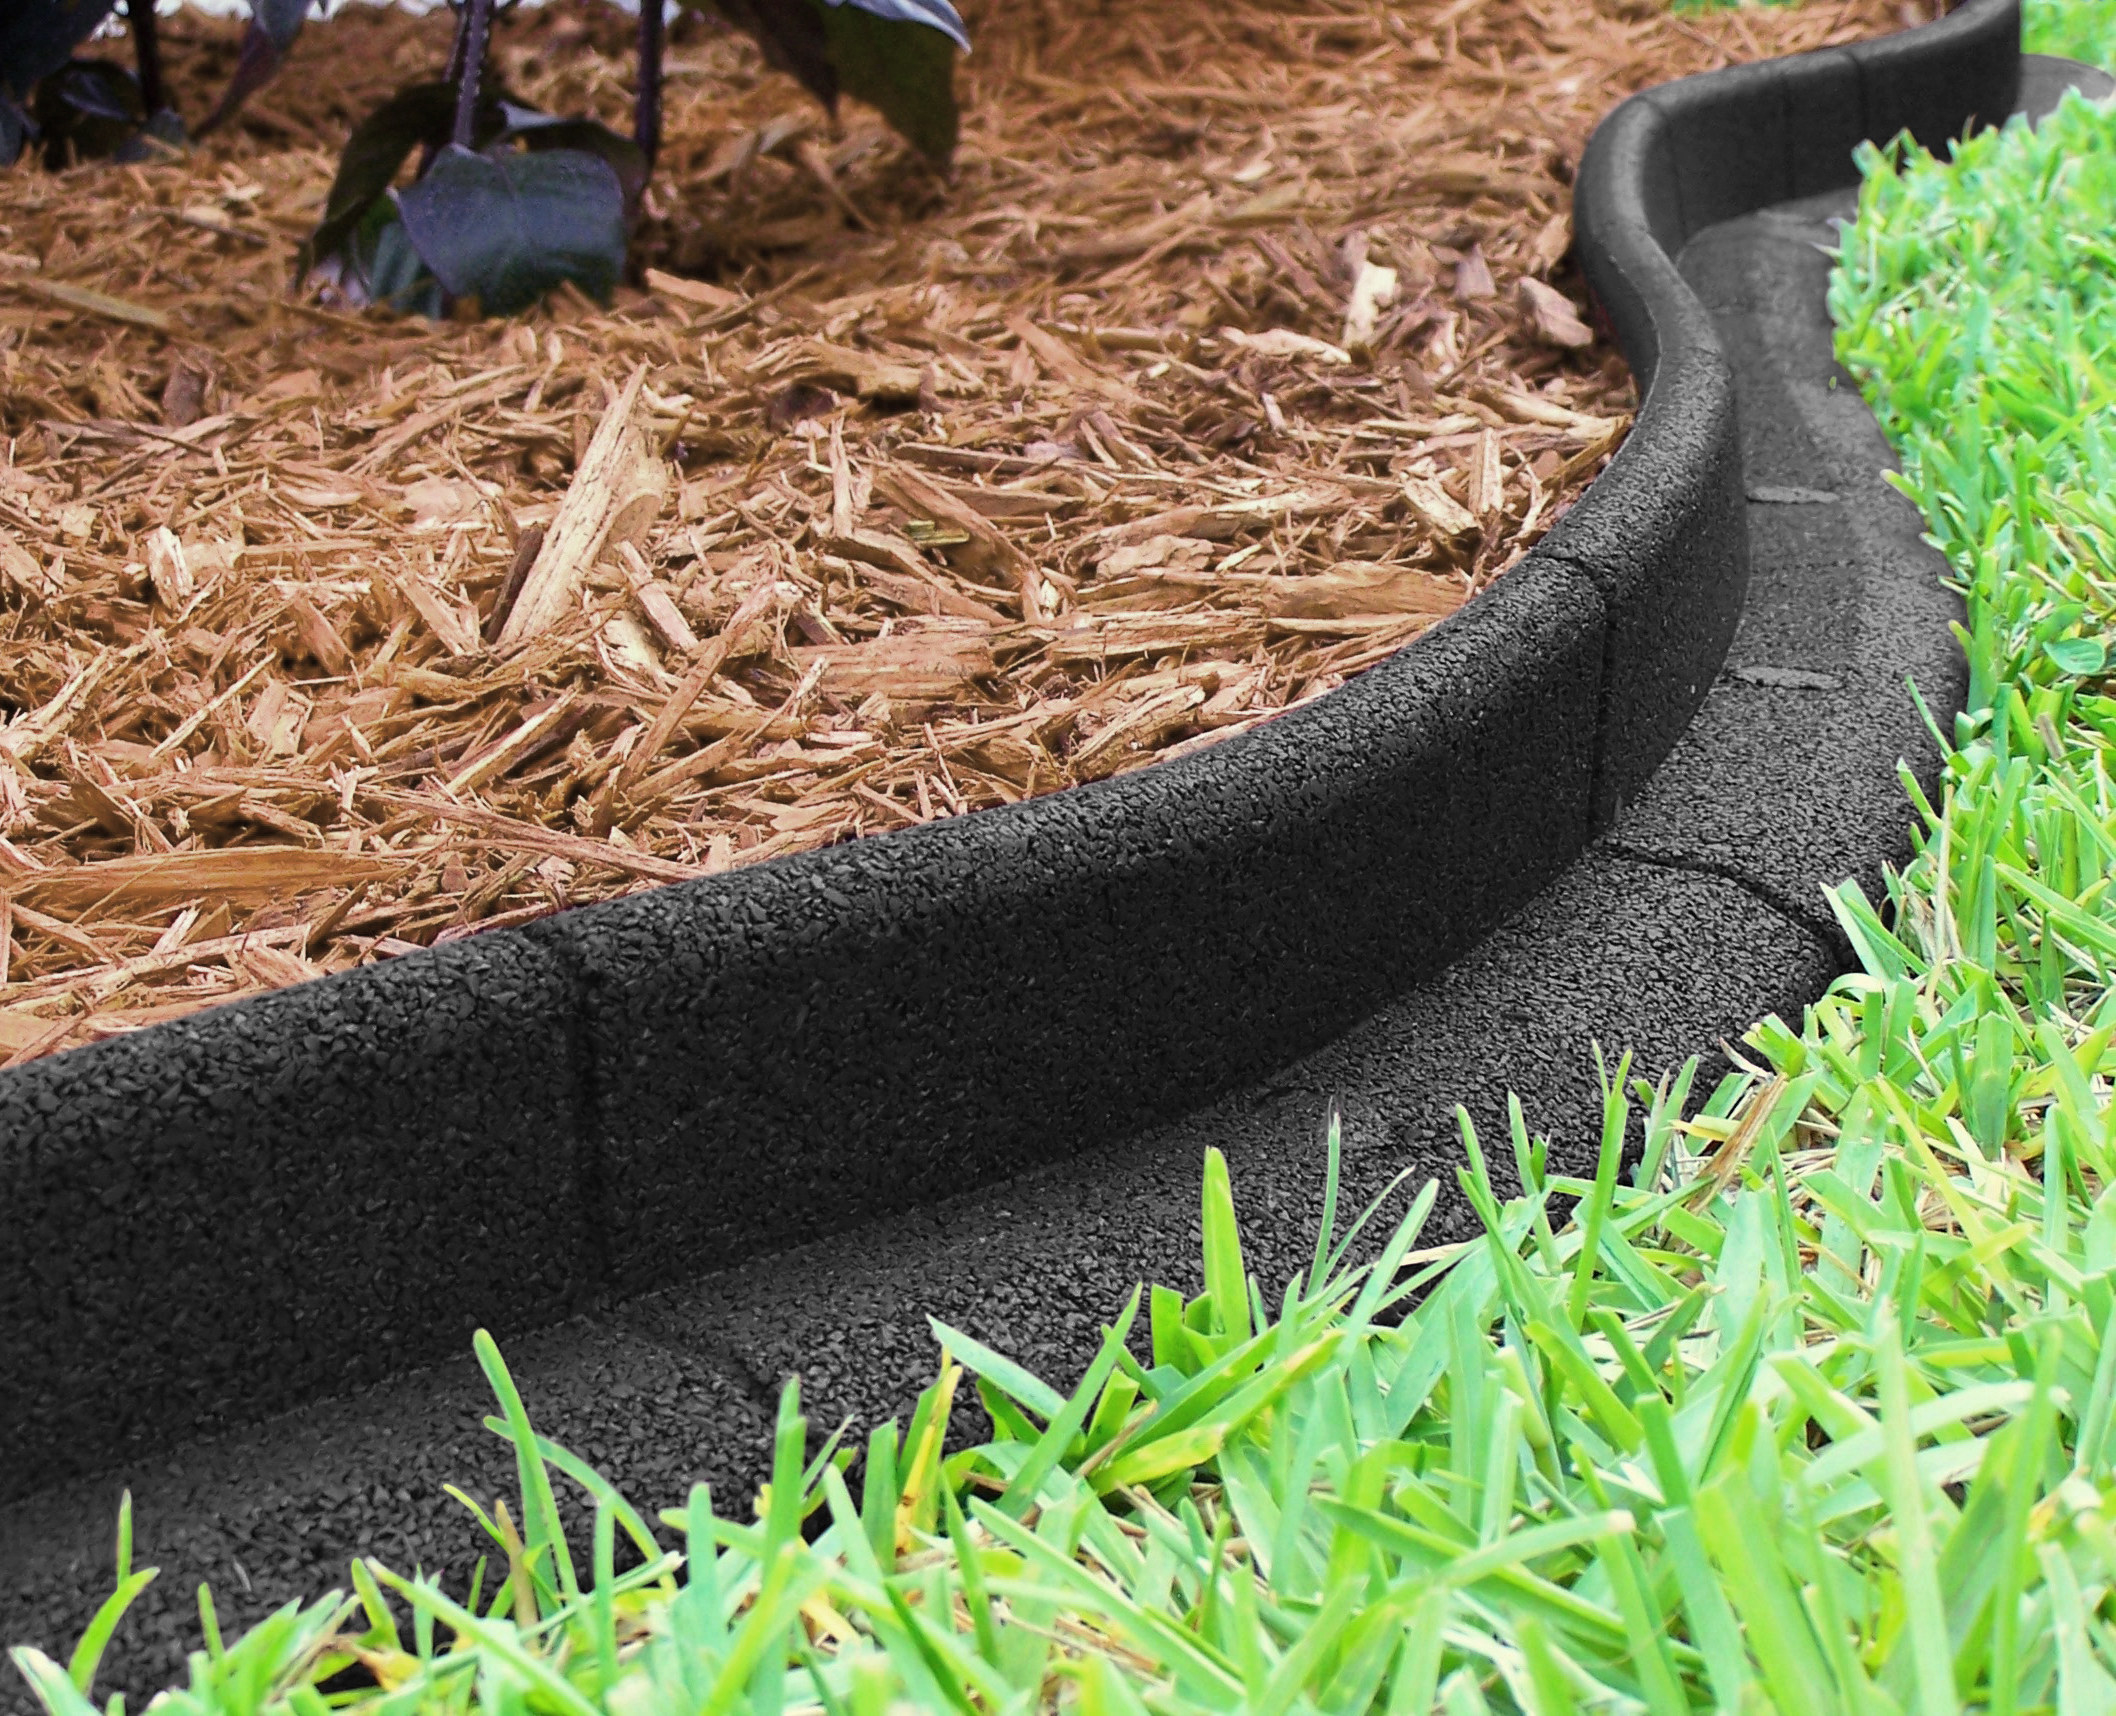 Black landscape edging keeping woodchips from mixing with the lawn